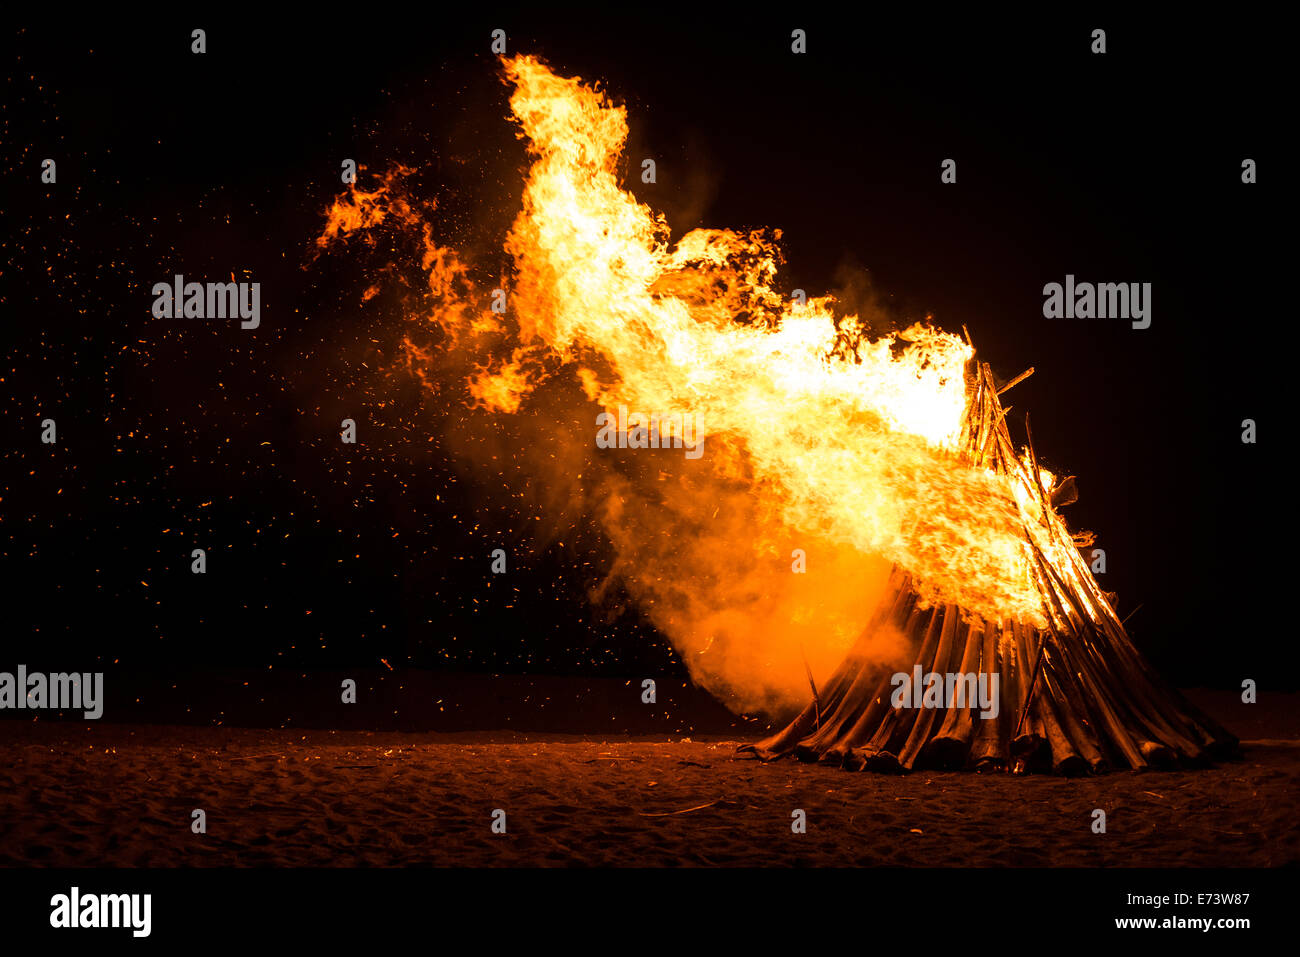 Blazing bonfire on the beach of a small island in the Philippines - Stock Image